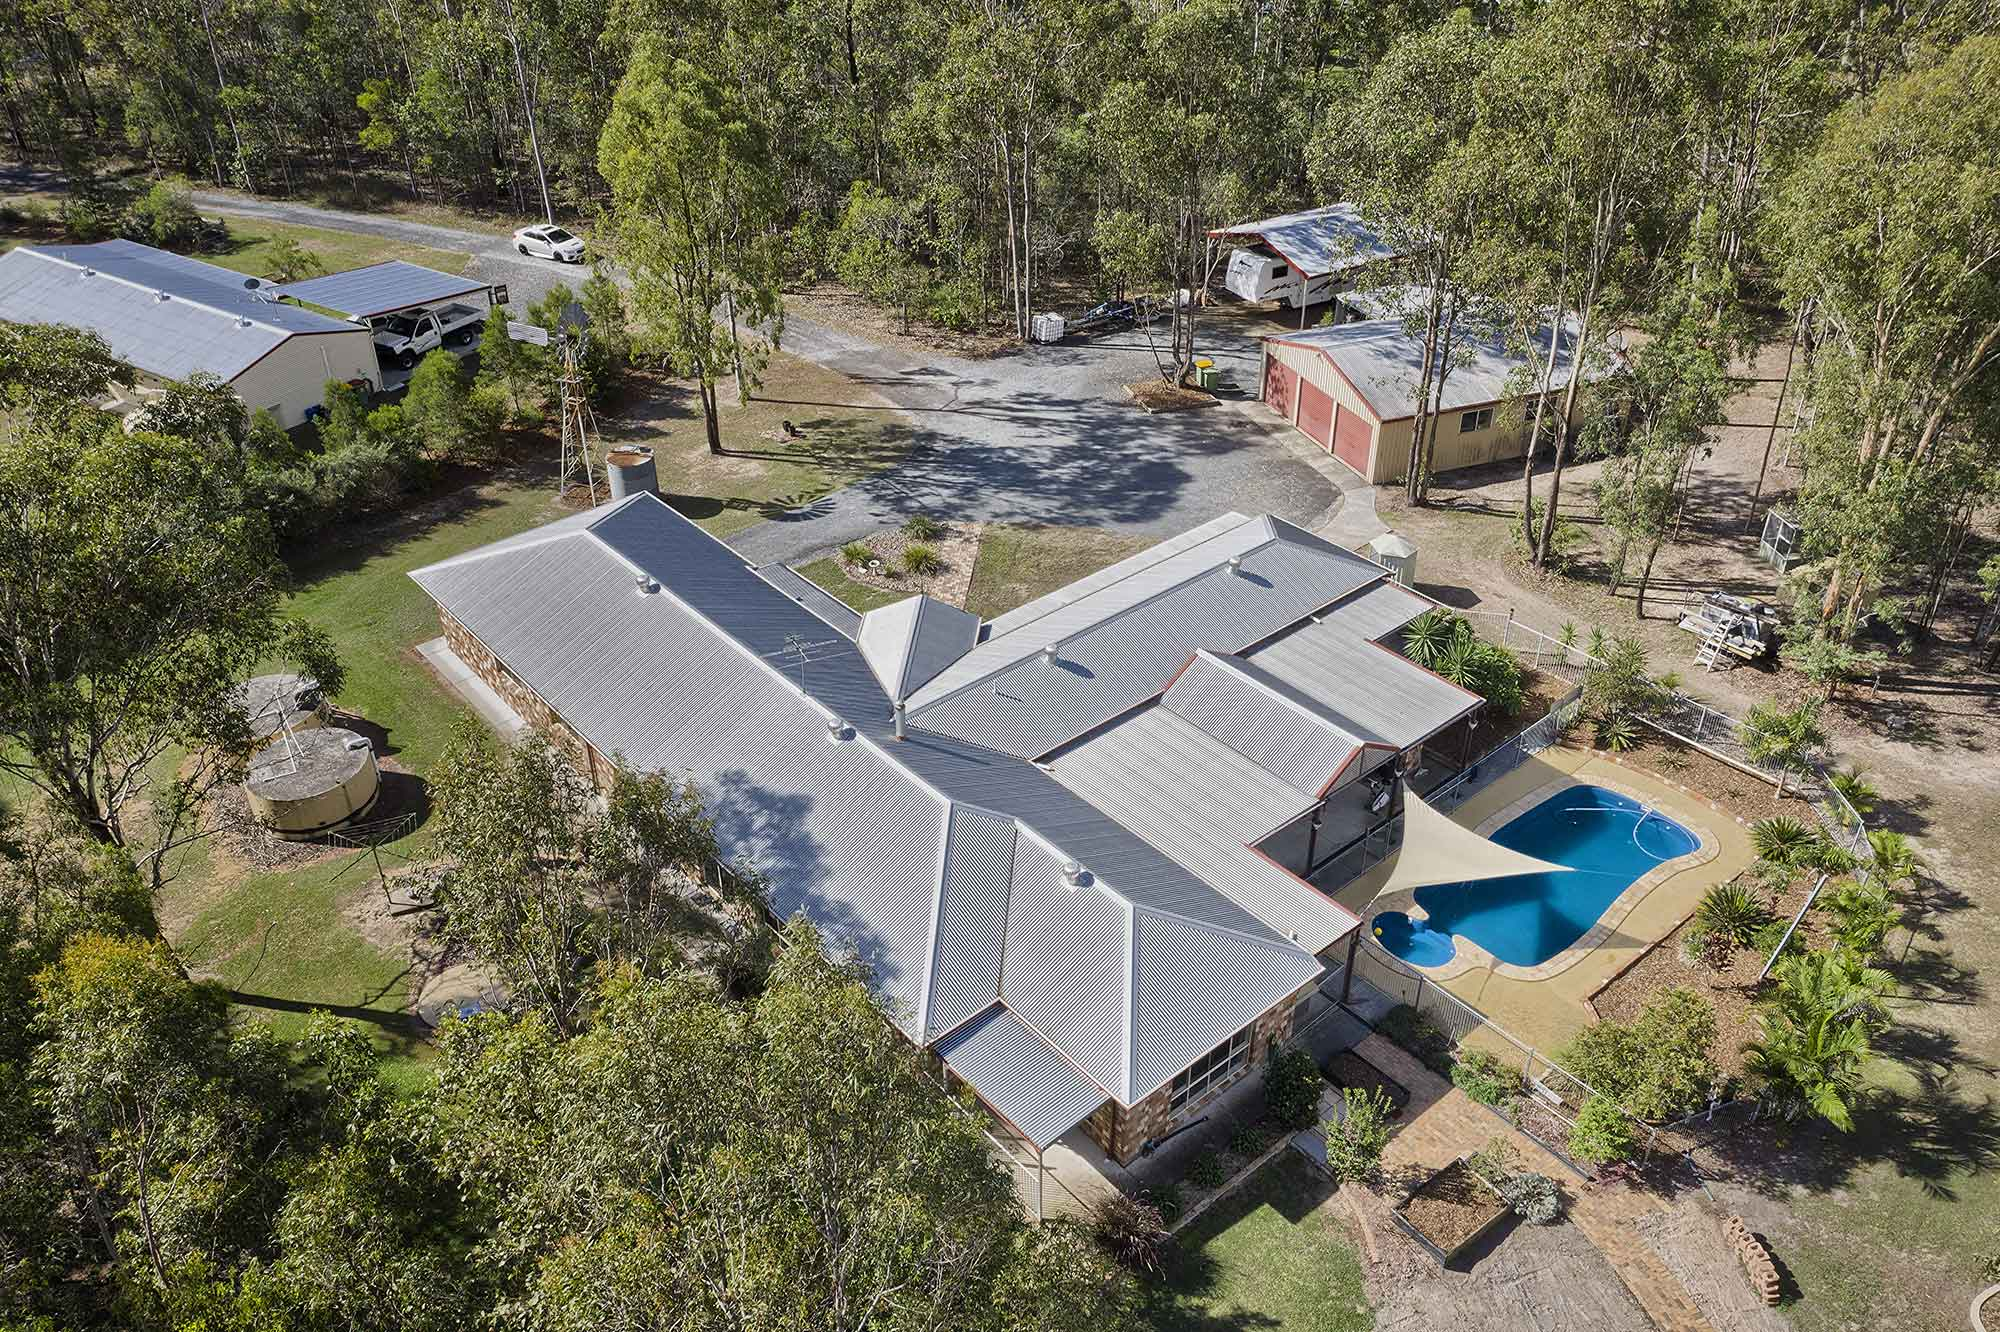 Capturing all the built structures - Drone photography acreage property for sale at 56 Sandpiper Drive Jimboomba